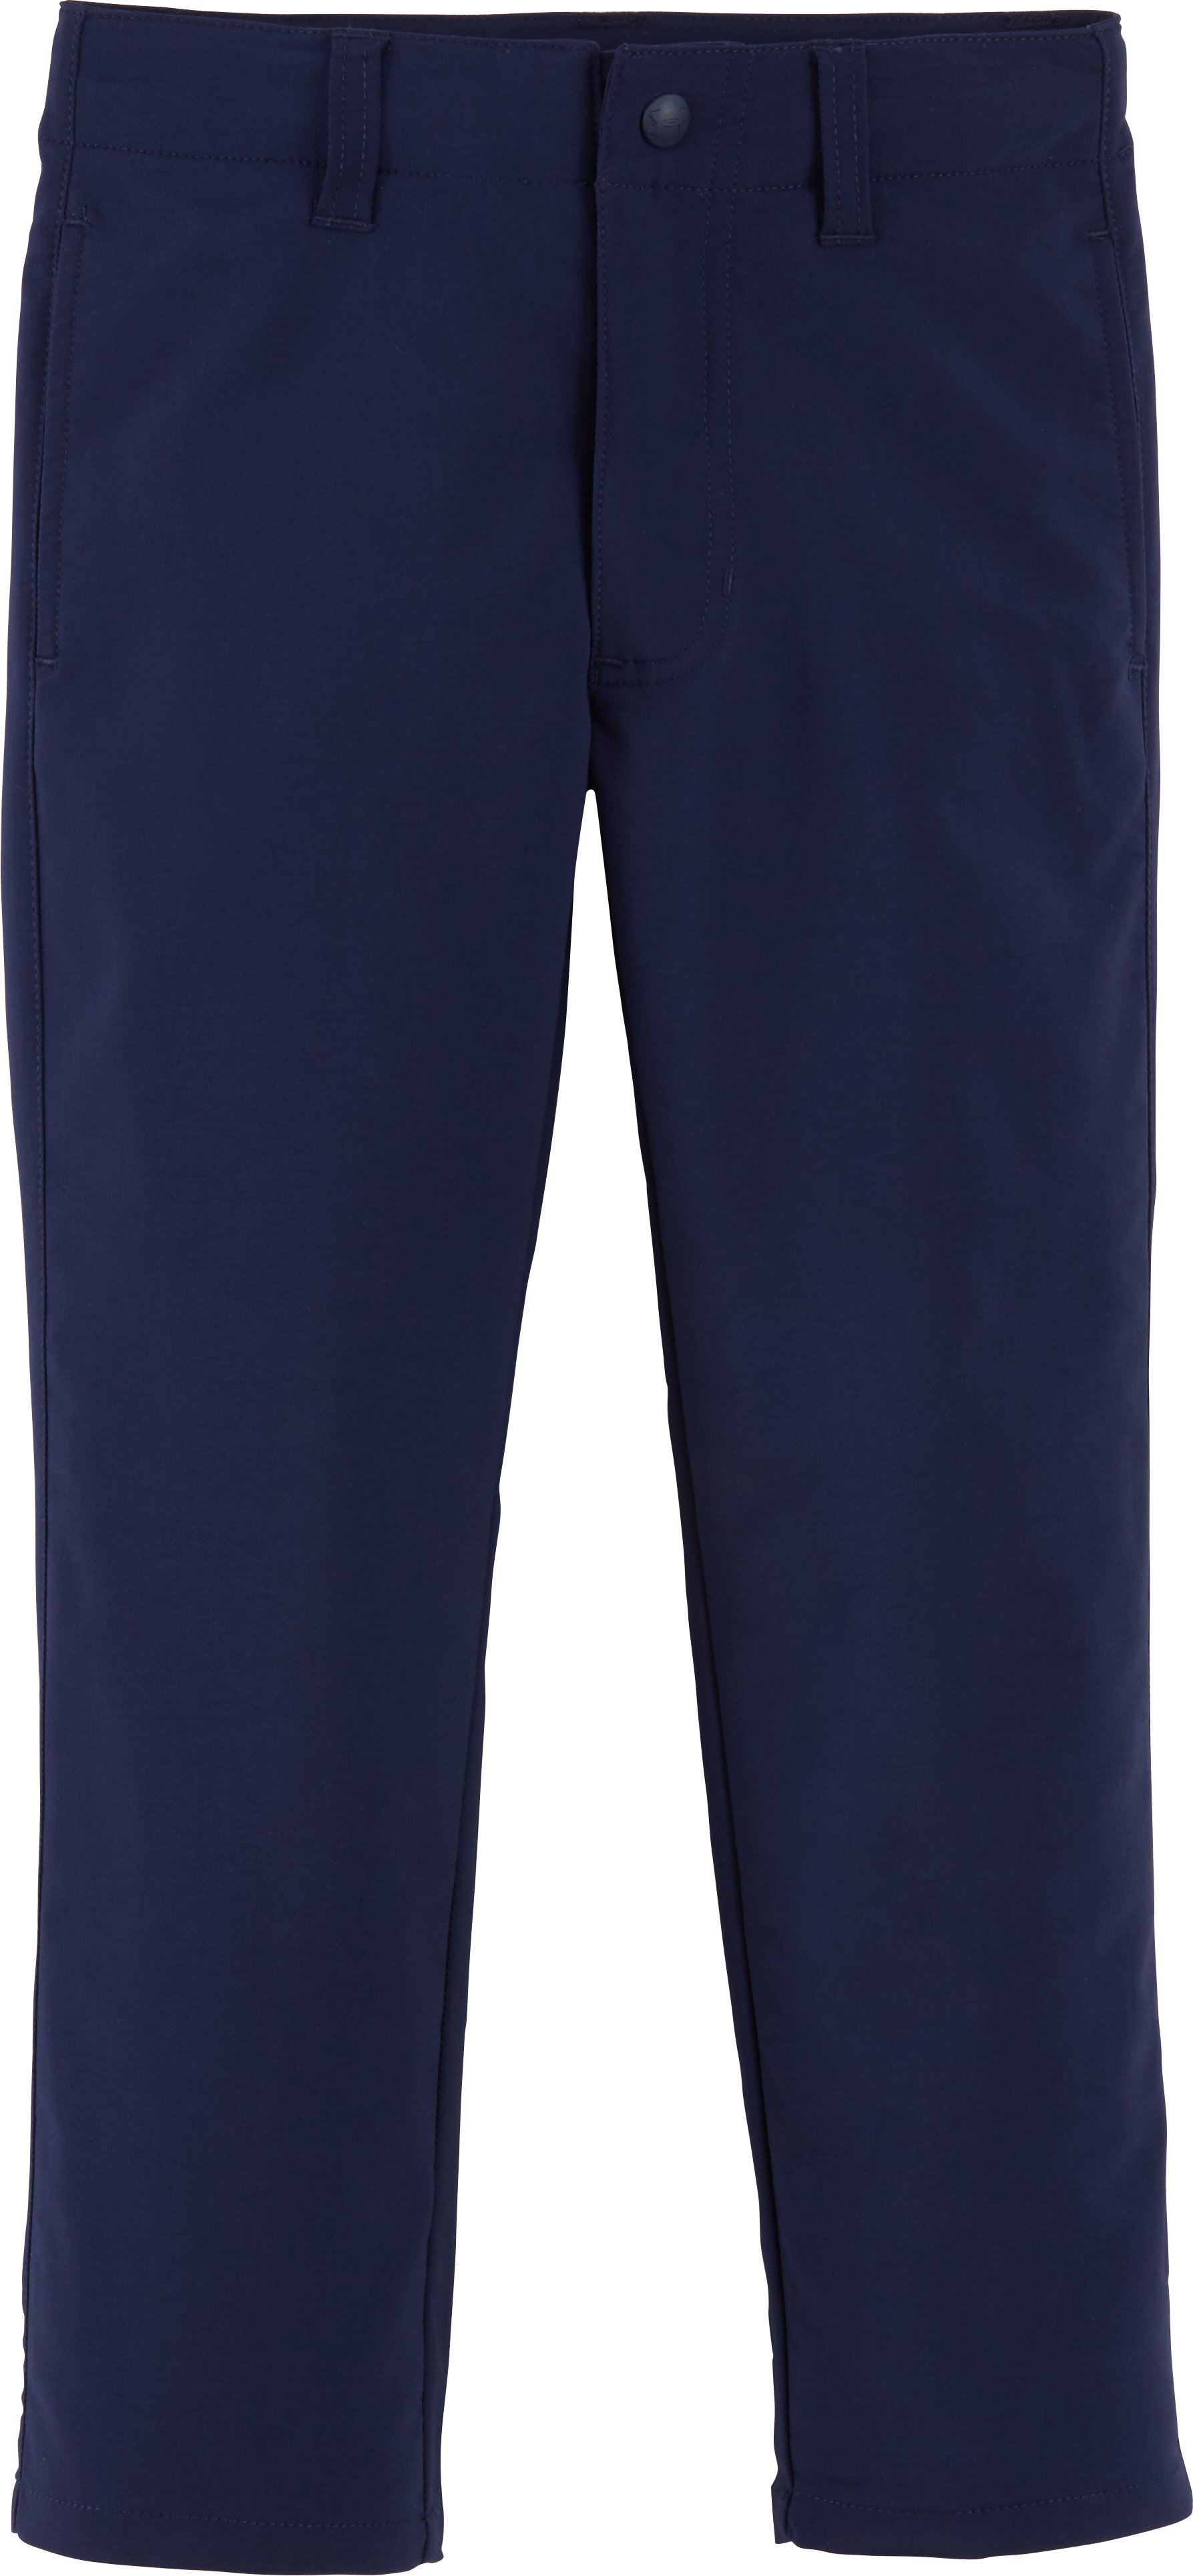 Boys' Pre-School UA Match Play Pants, NAVY SEAL, zoomed image